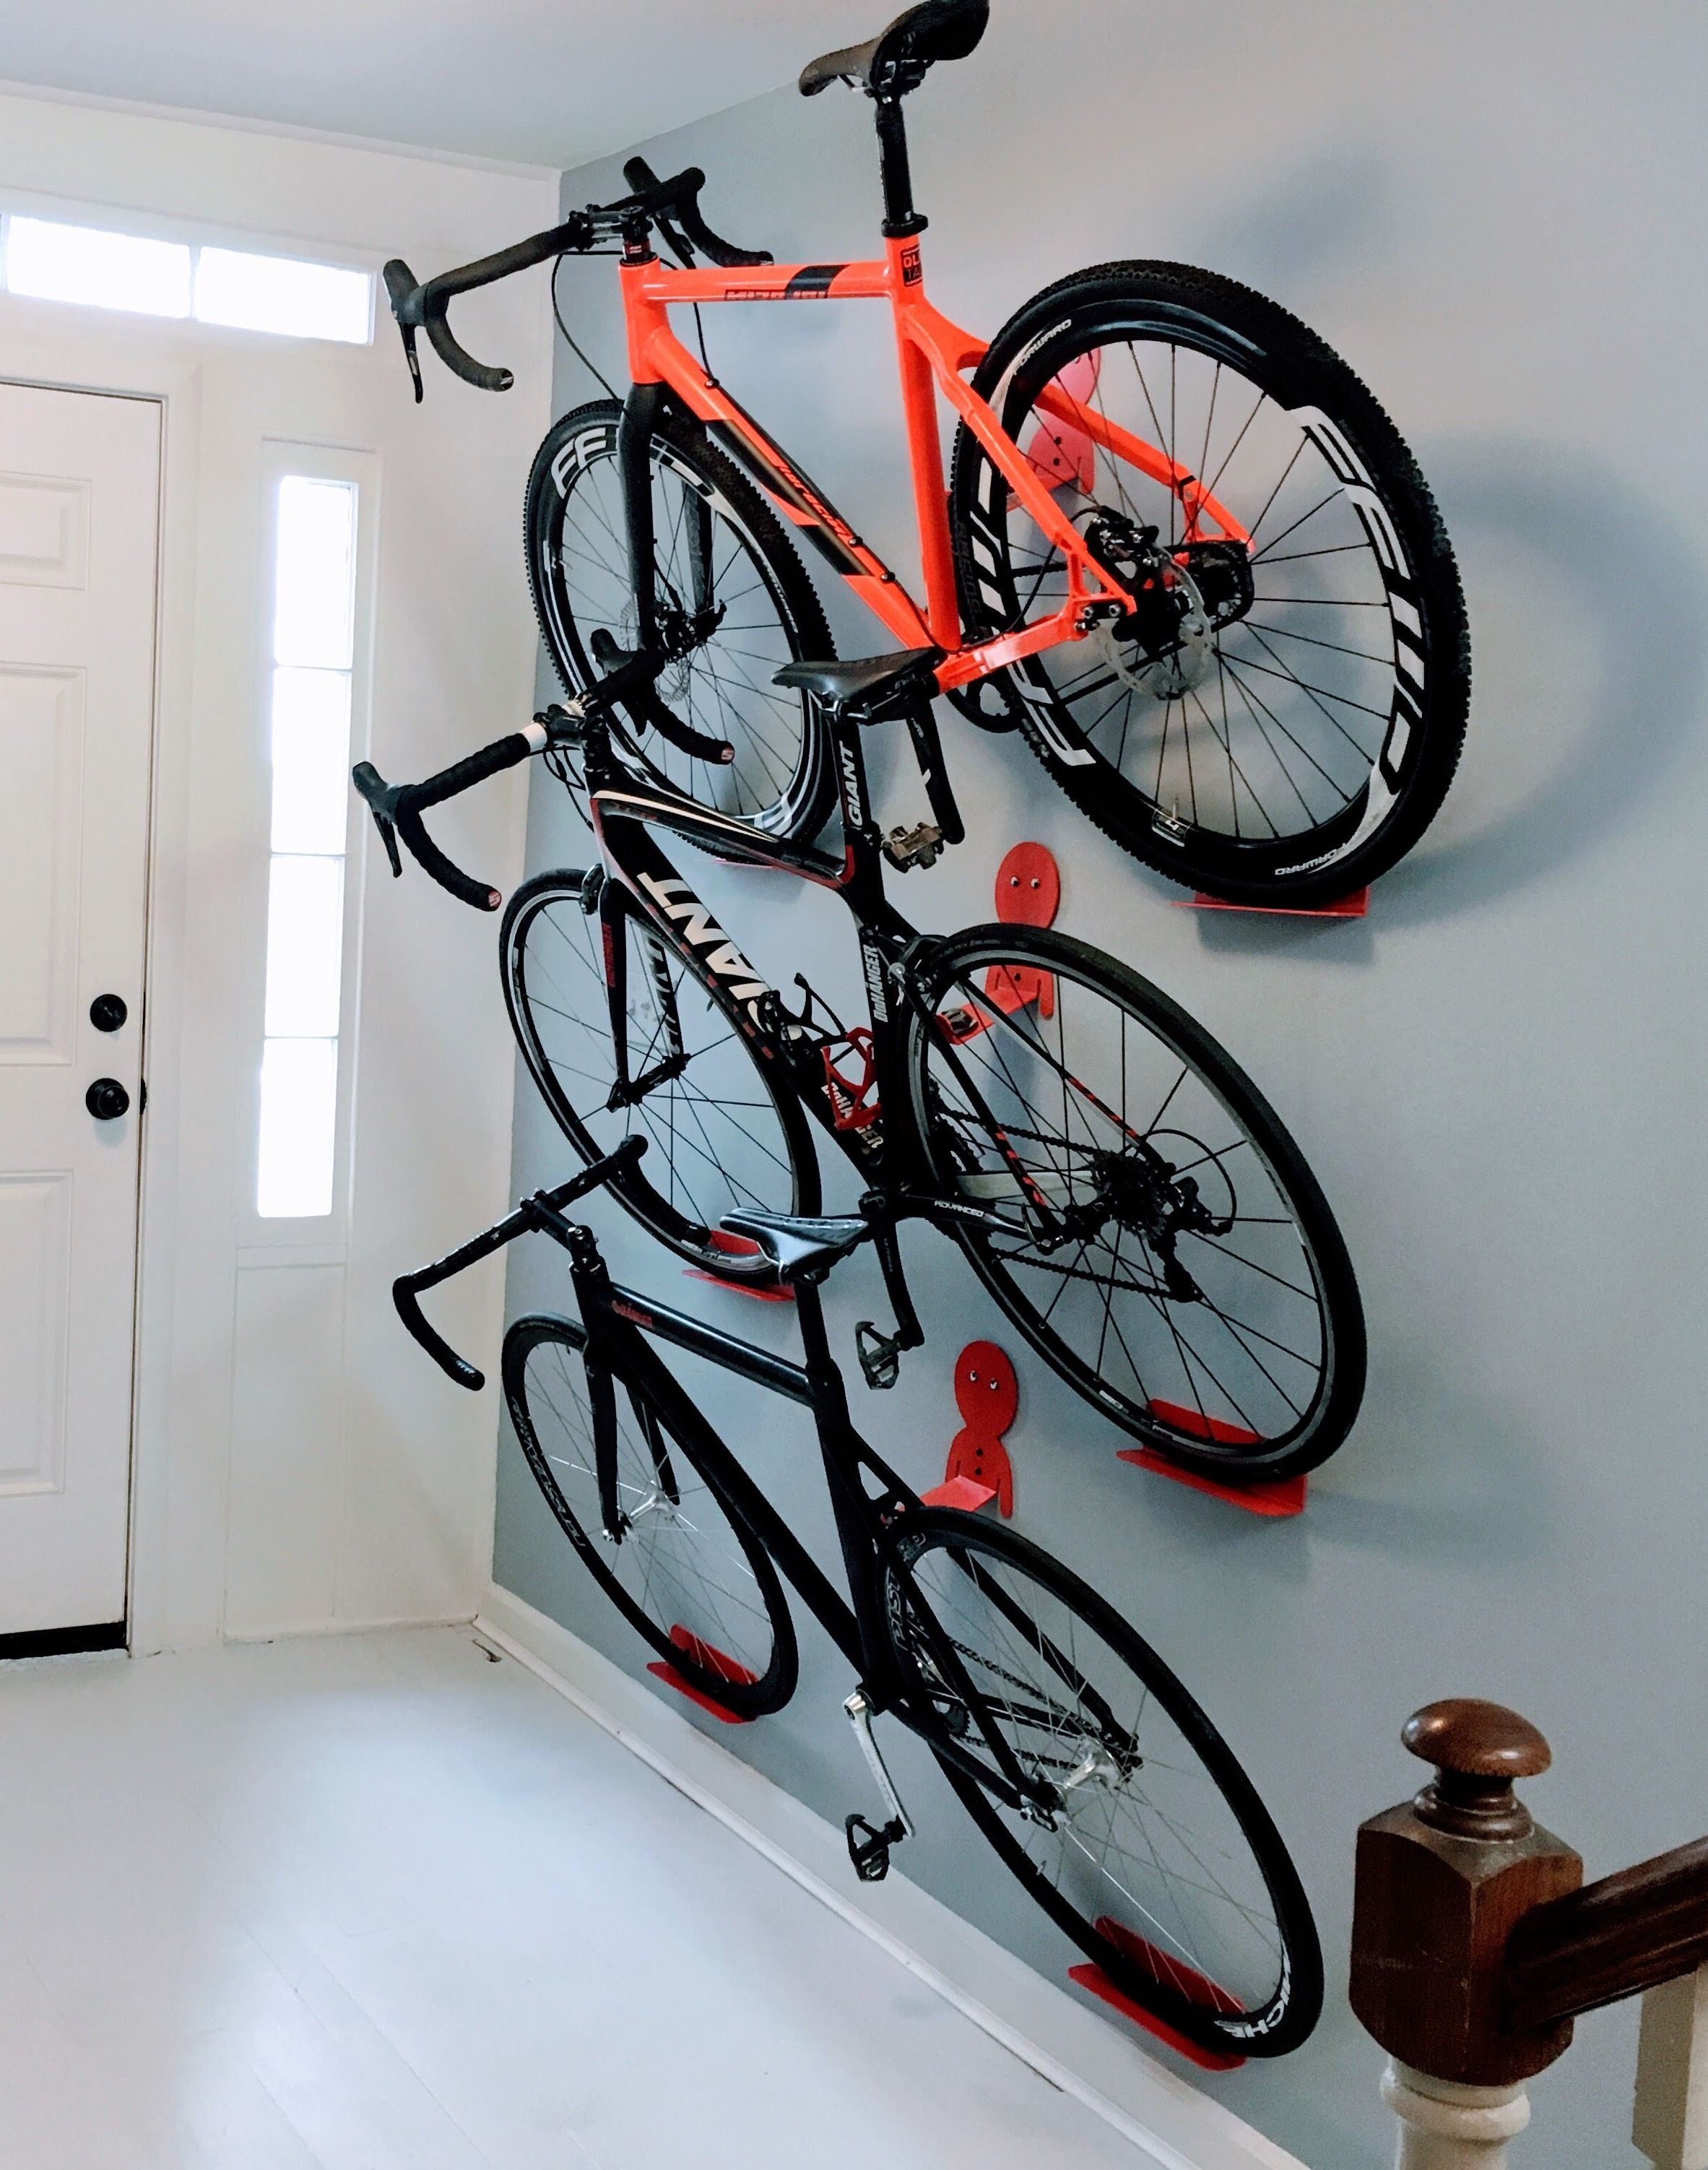 guides line rack bike storage puller get lifts bicycle find garage case hanger on shopping mount of at ceiling cheap deals quotations hoist